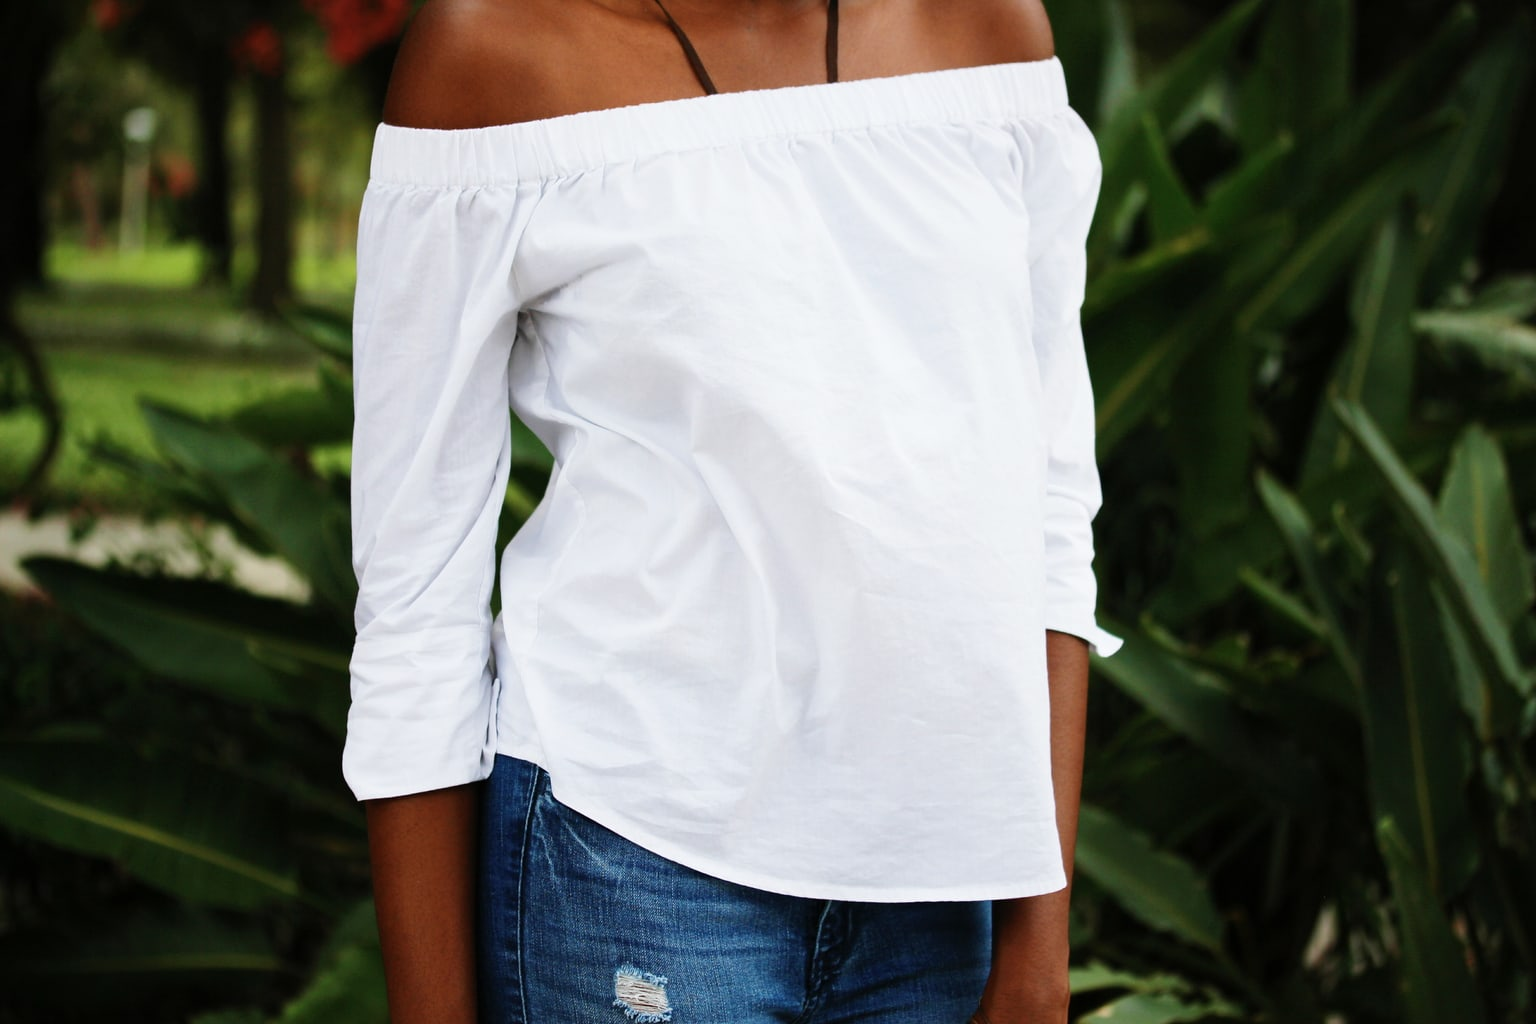 This off-the-shoulder white flowy top is great for warm weather days.